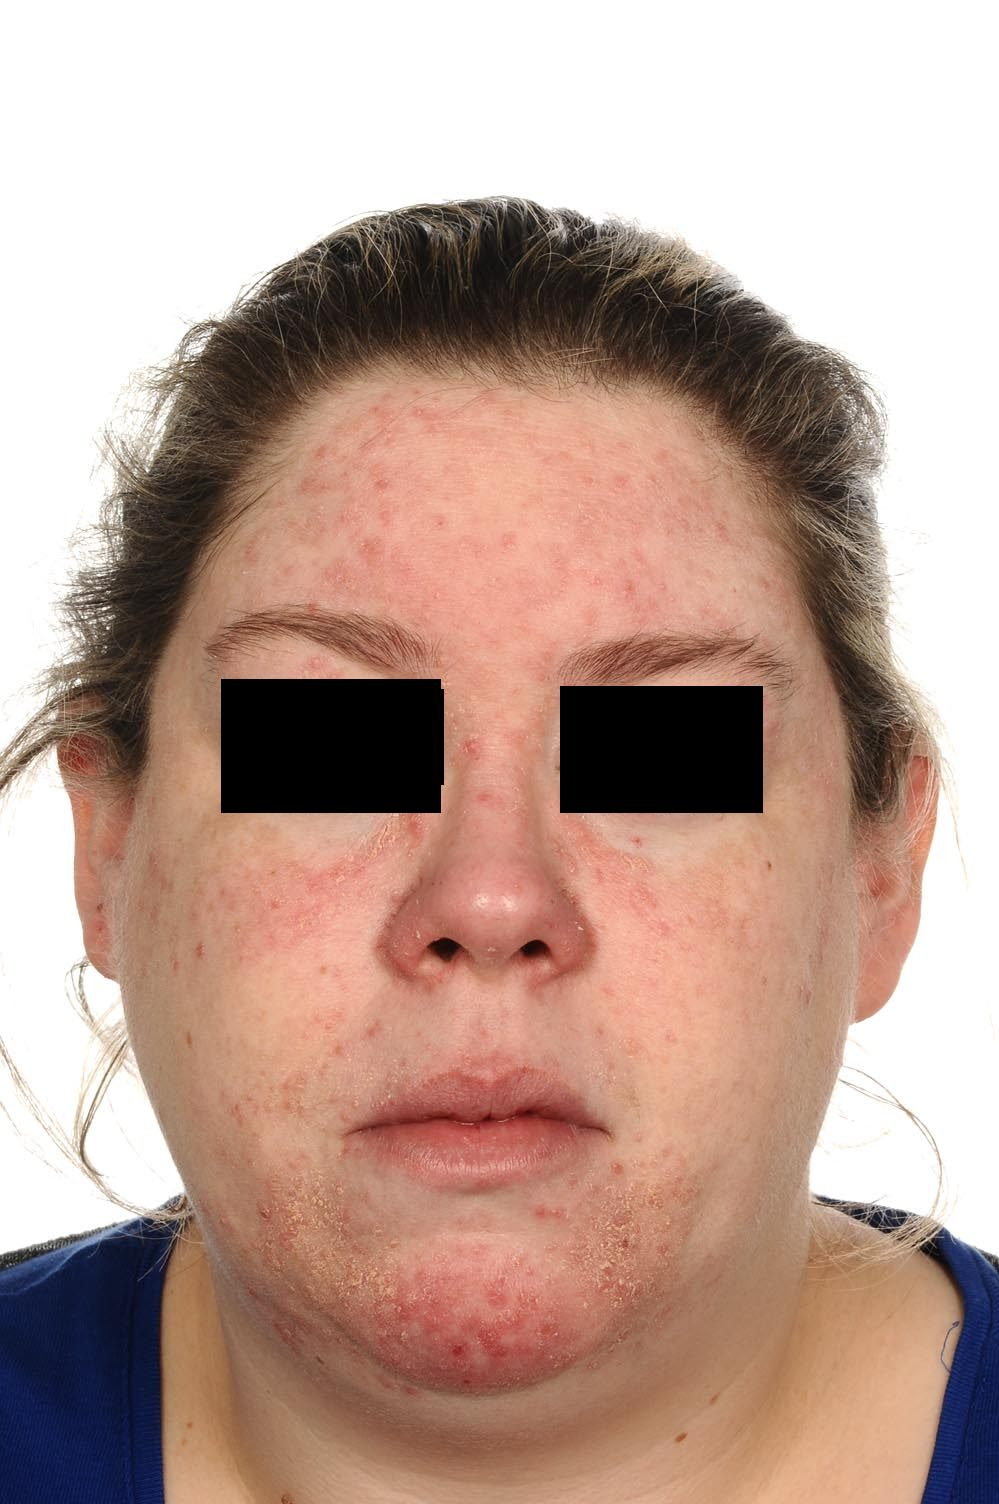 Red spots on the face -rosacea